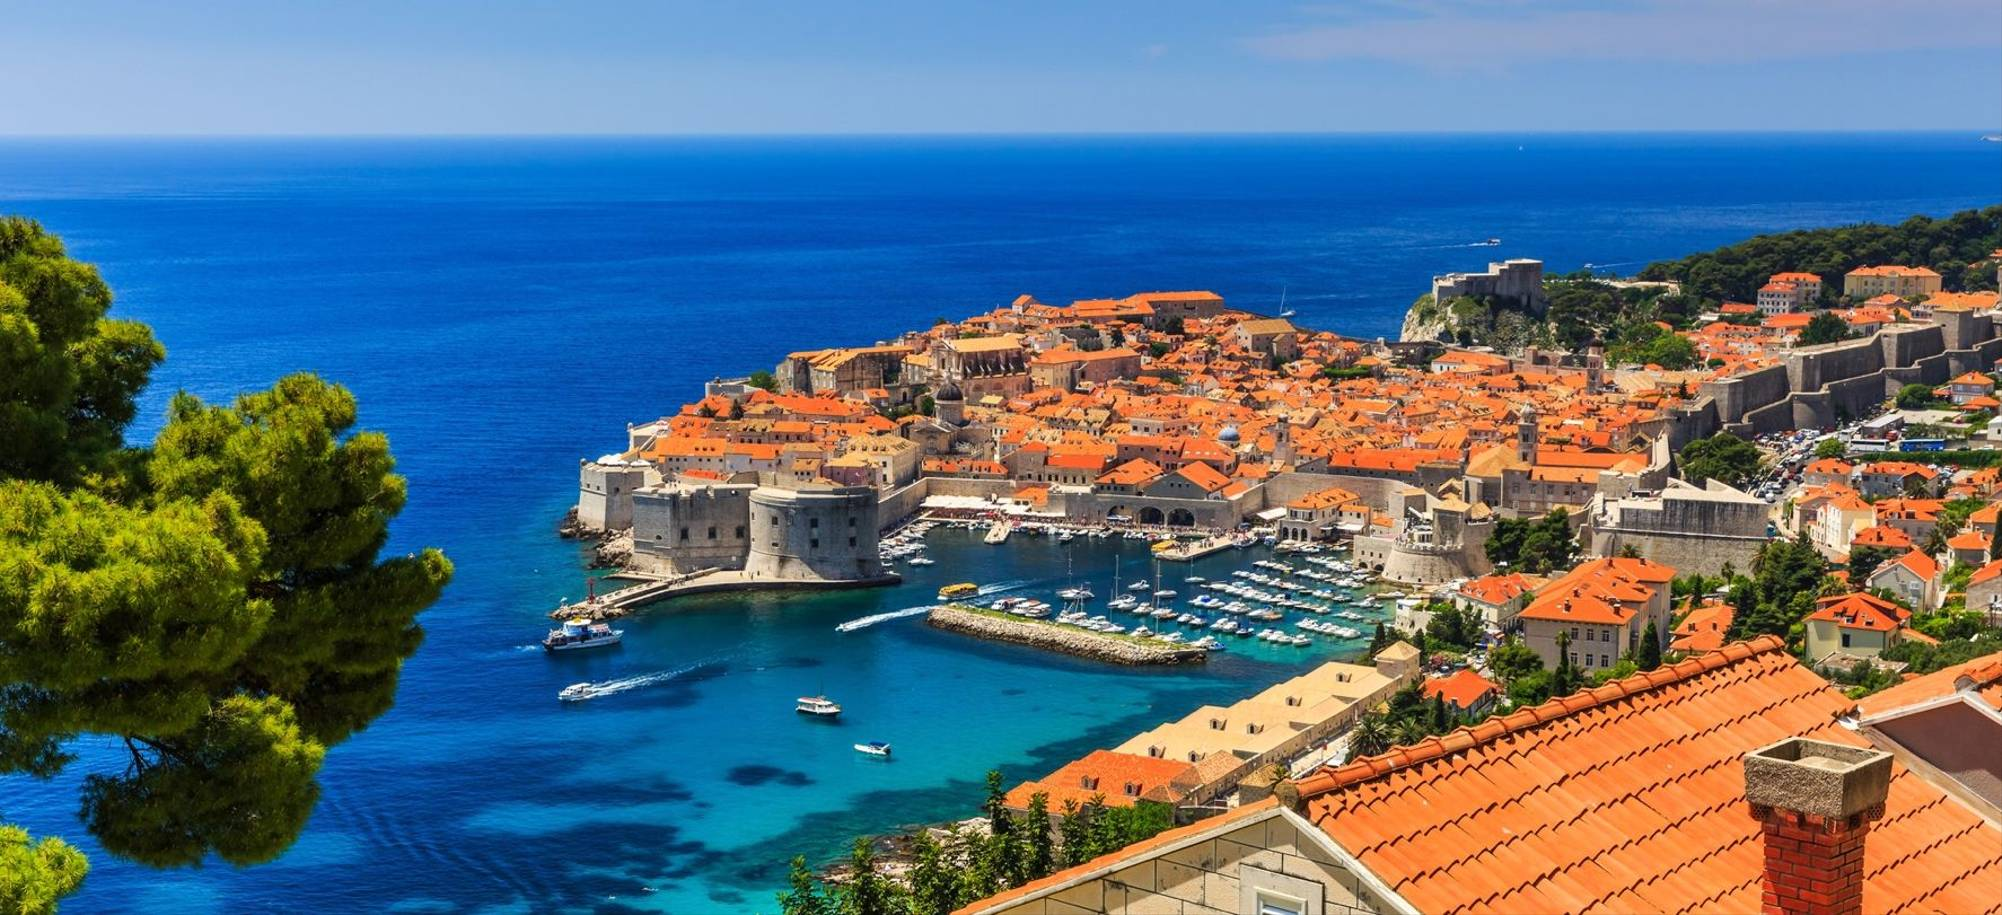 8 Day - Dubrovnik  - Itinerary Desktop.jpg